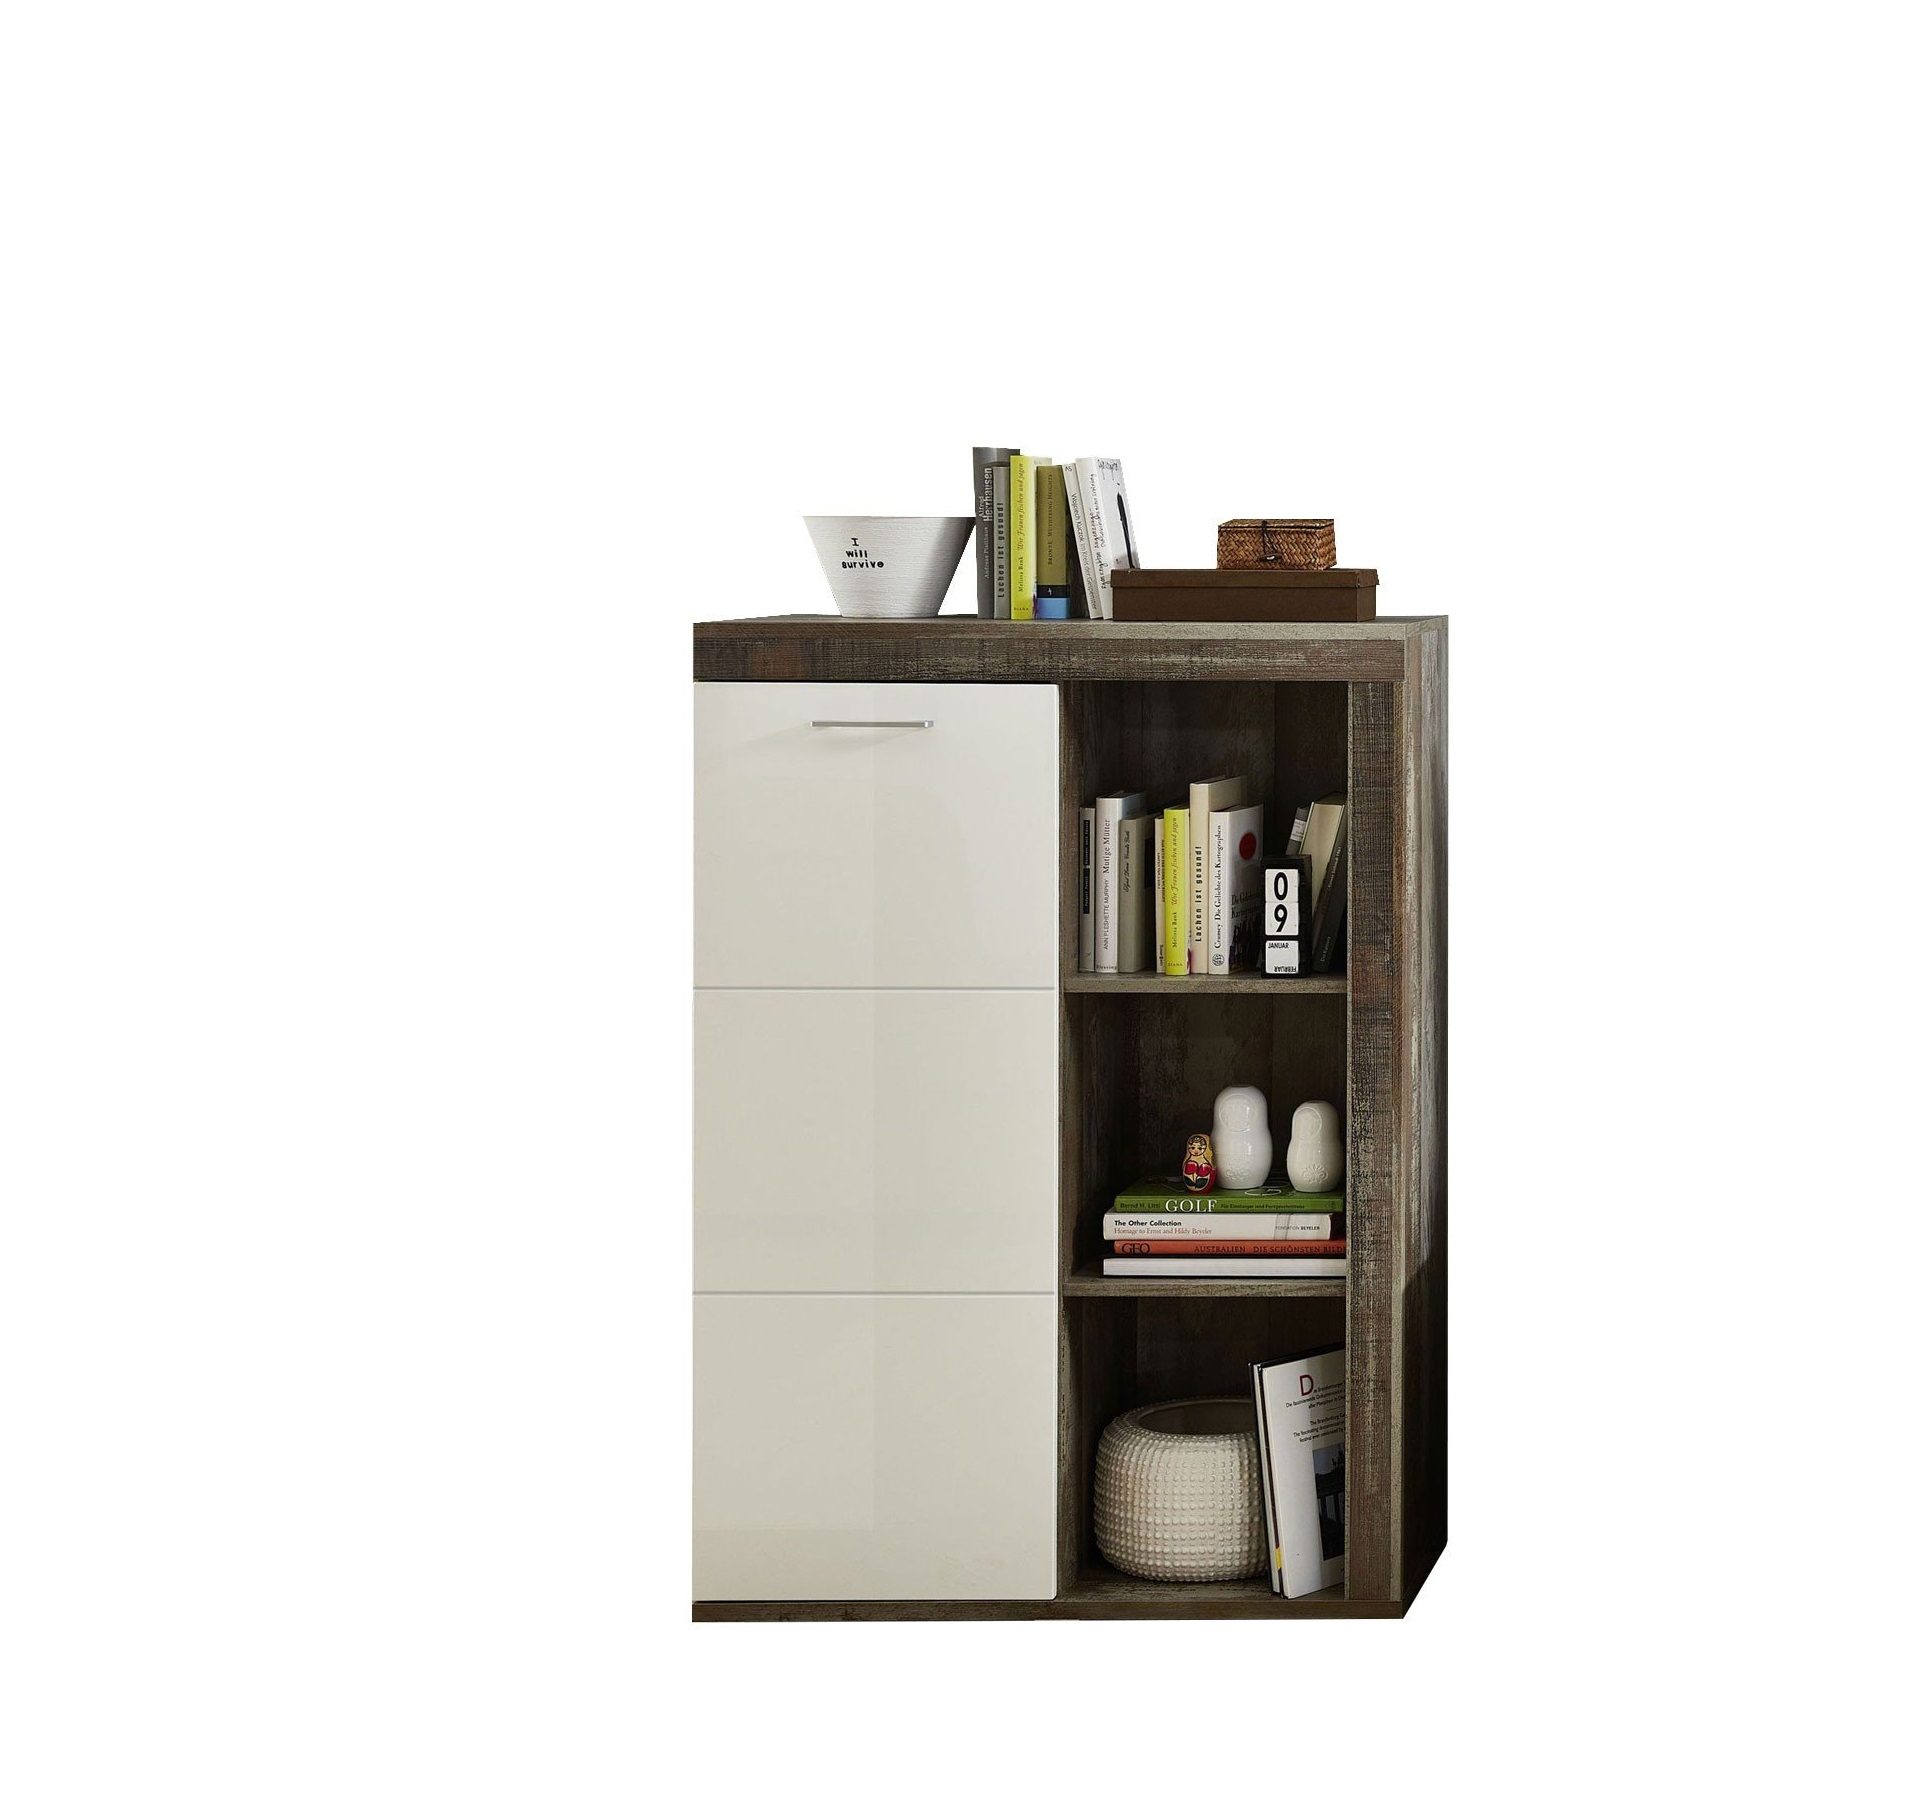 Cabinet din pal si MDF, cu 1 usa Krone Alb / Natur, l87xA38xH125 cm somproduct.ro